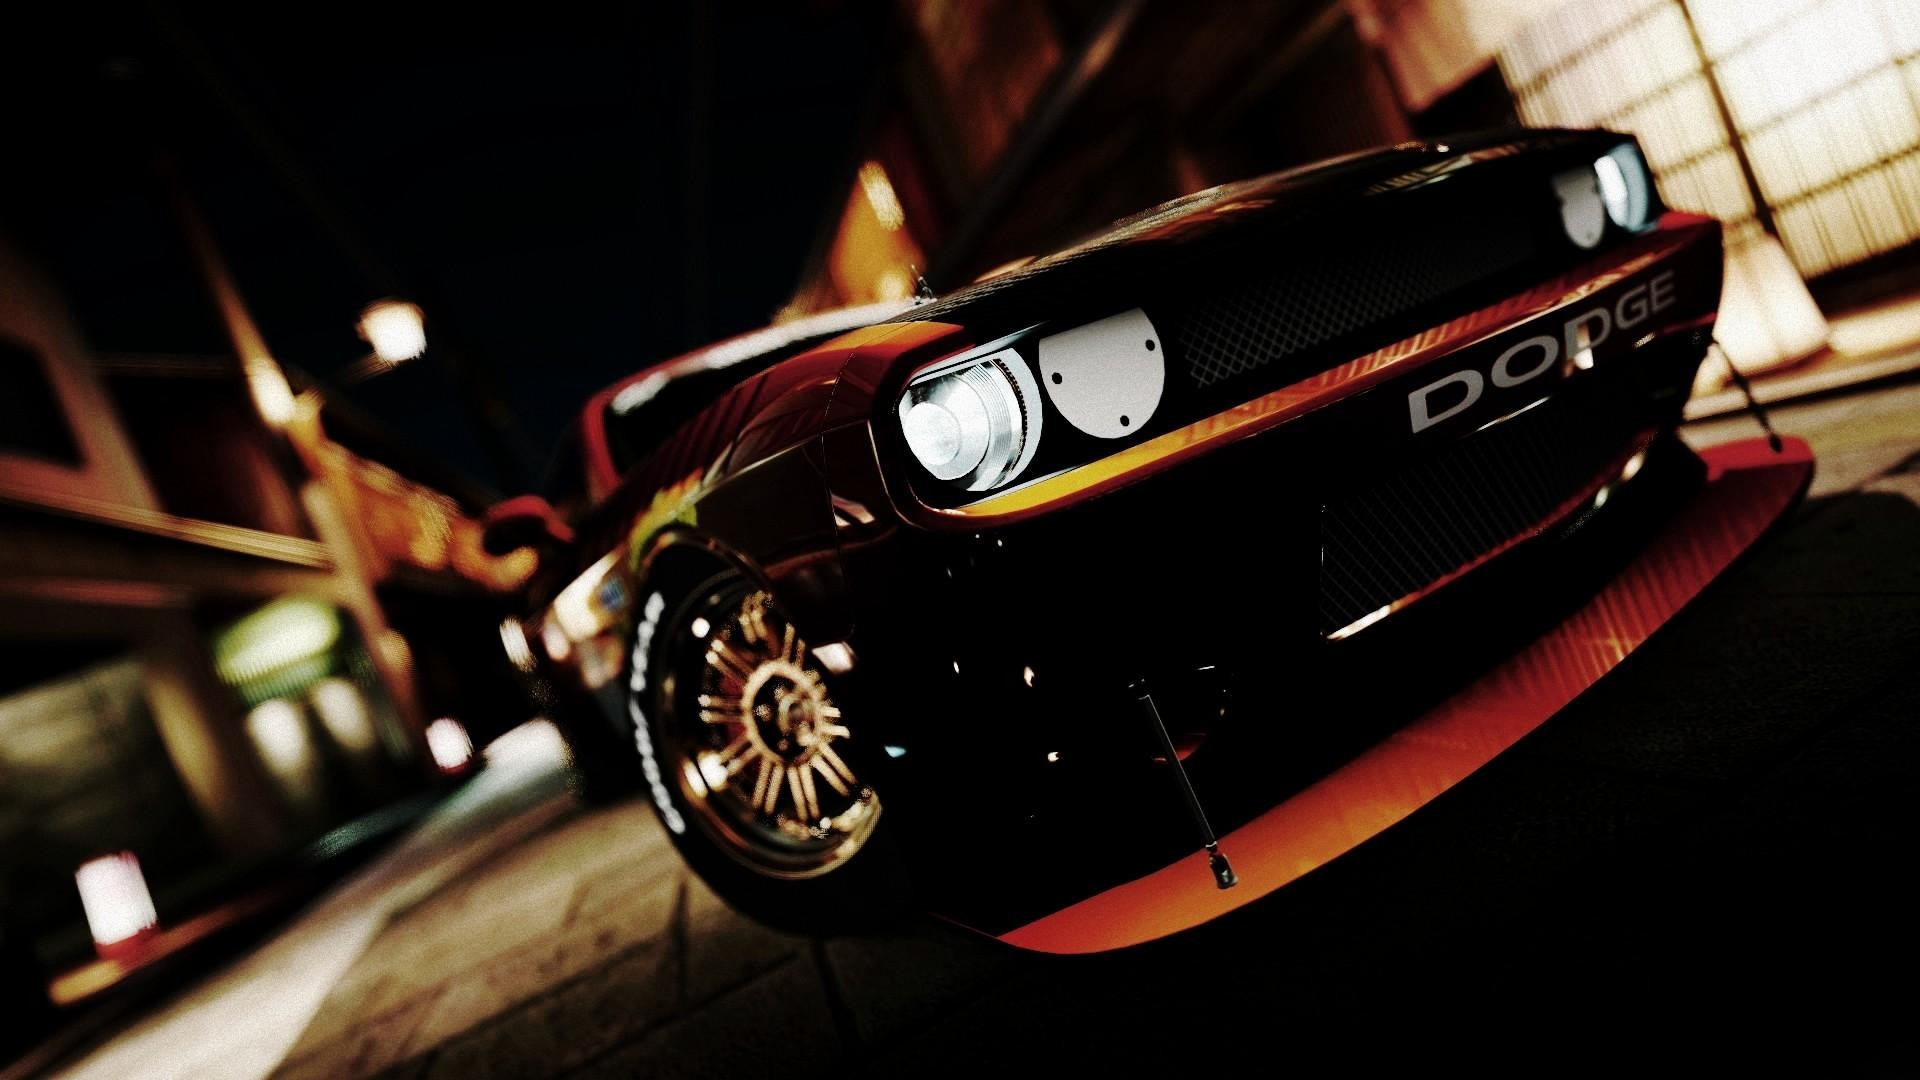 Car Wallpapers 1080p Project Cars Wallpapers 40 Project Cars High